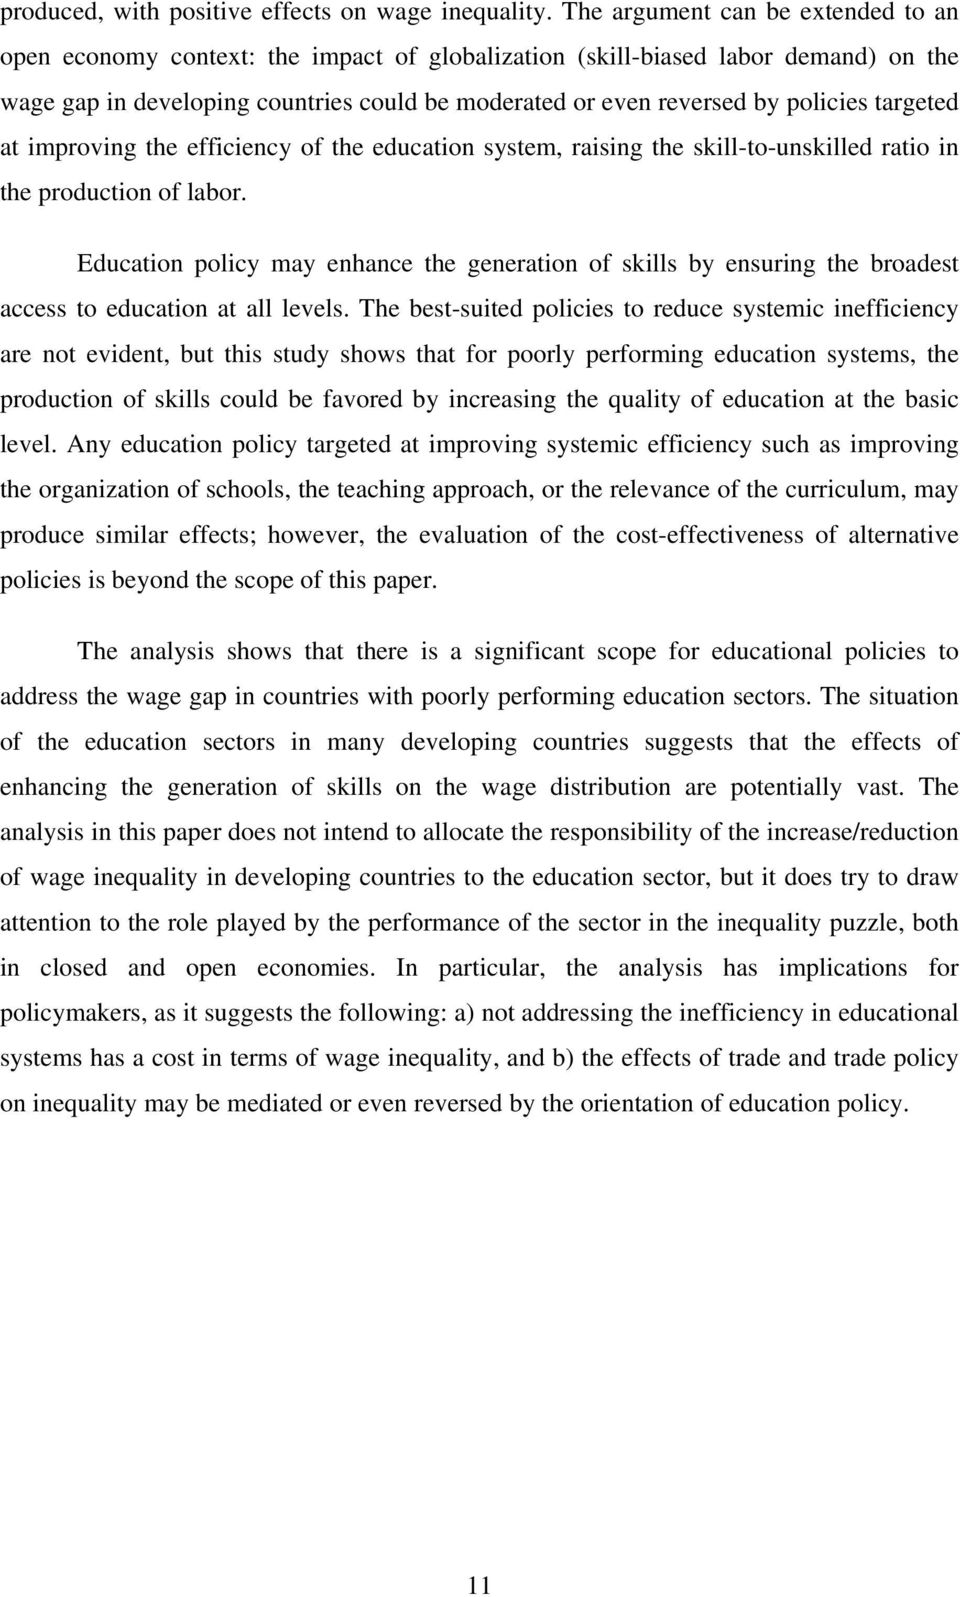 policies targeted at improving the efficiency of the education system, raising the skill-to-unskilled ratio in the production of labor.